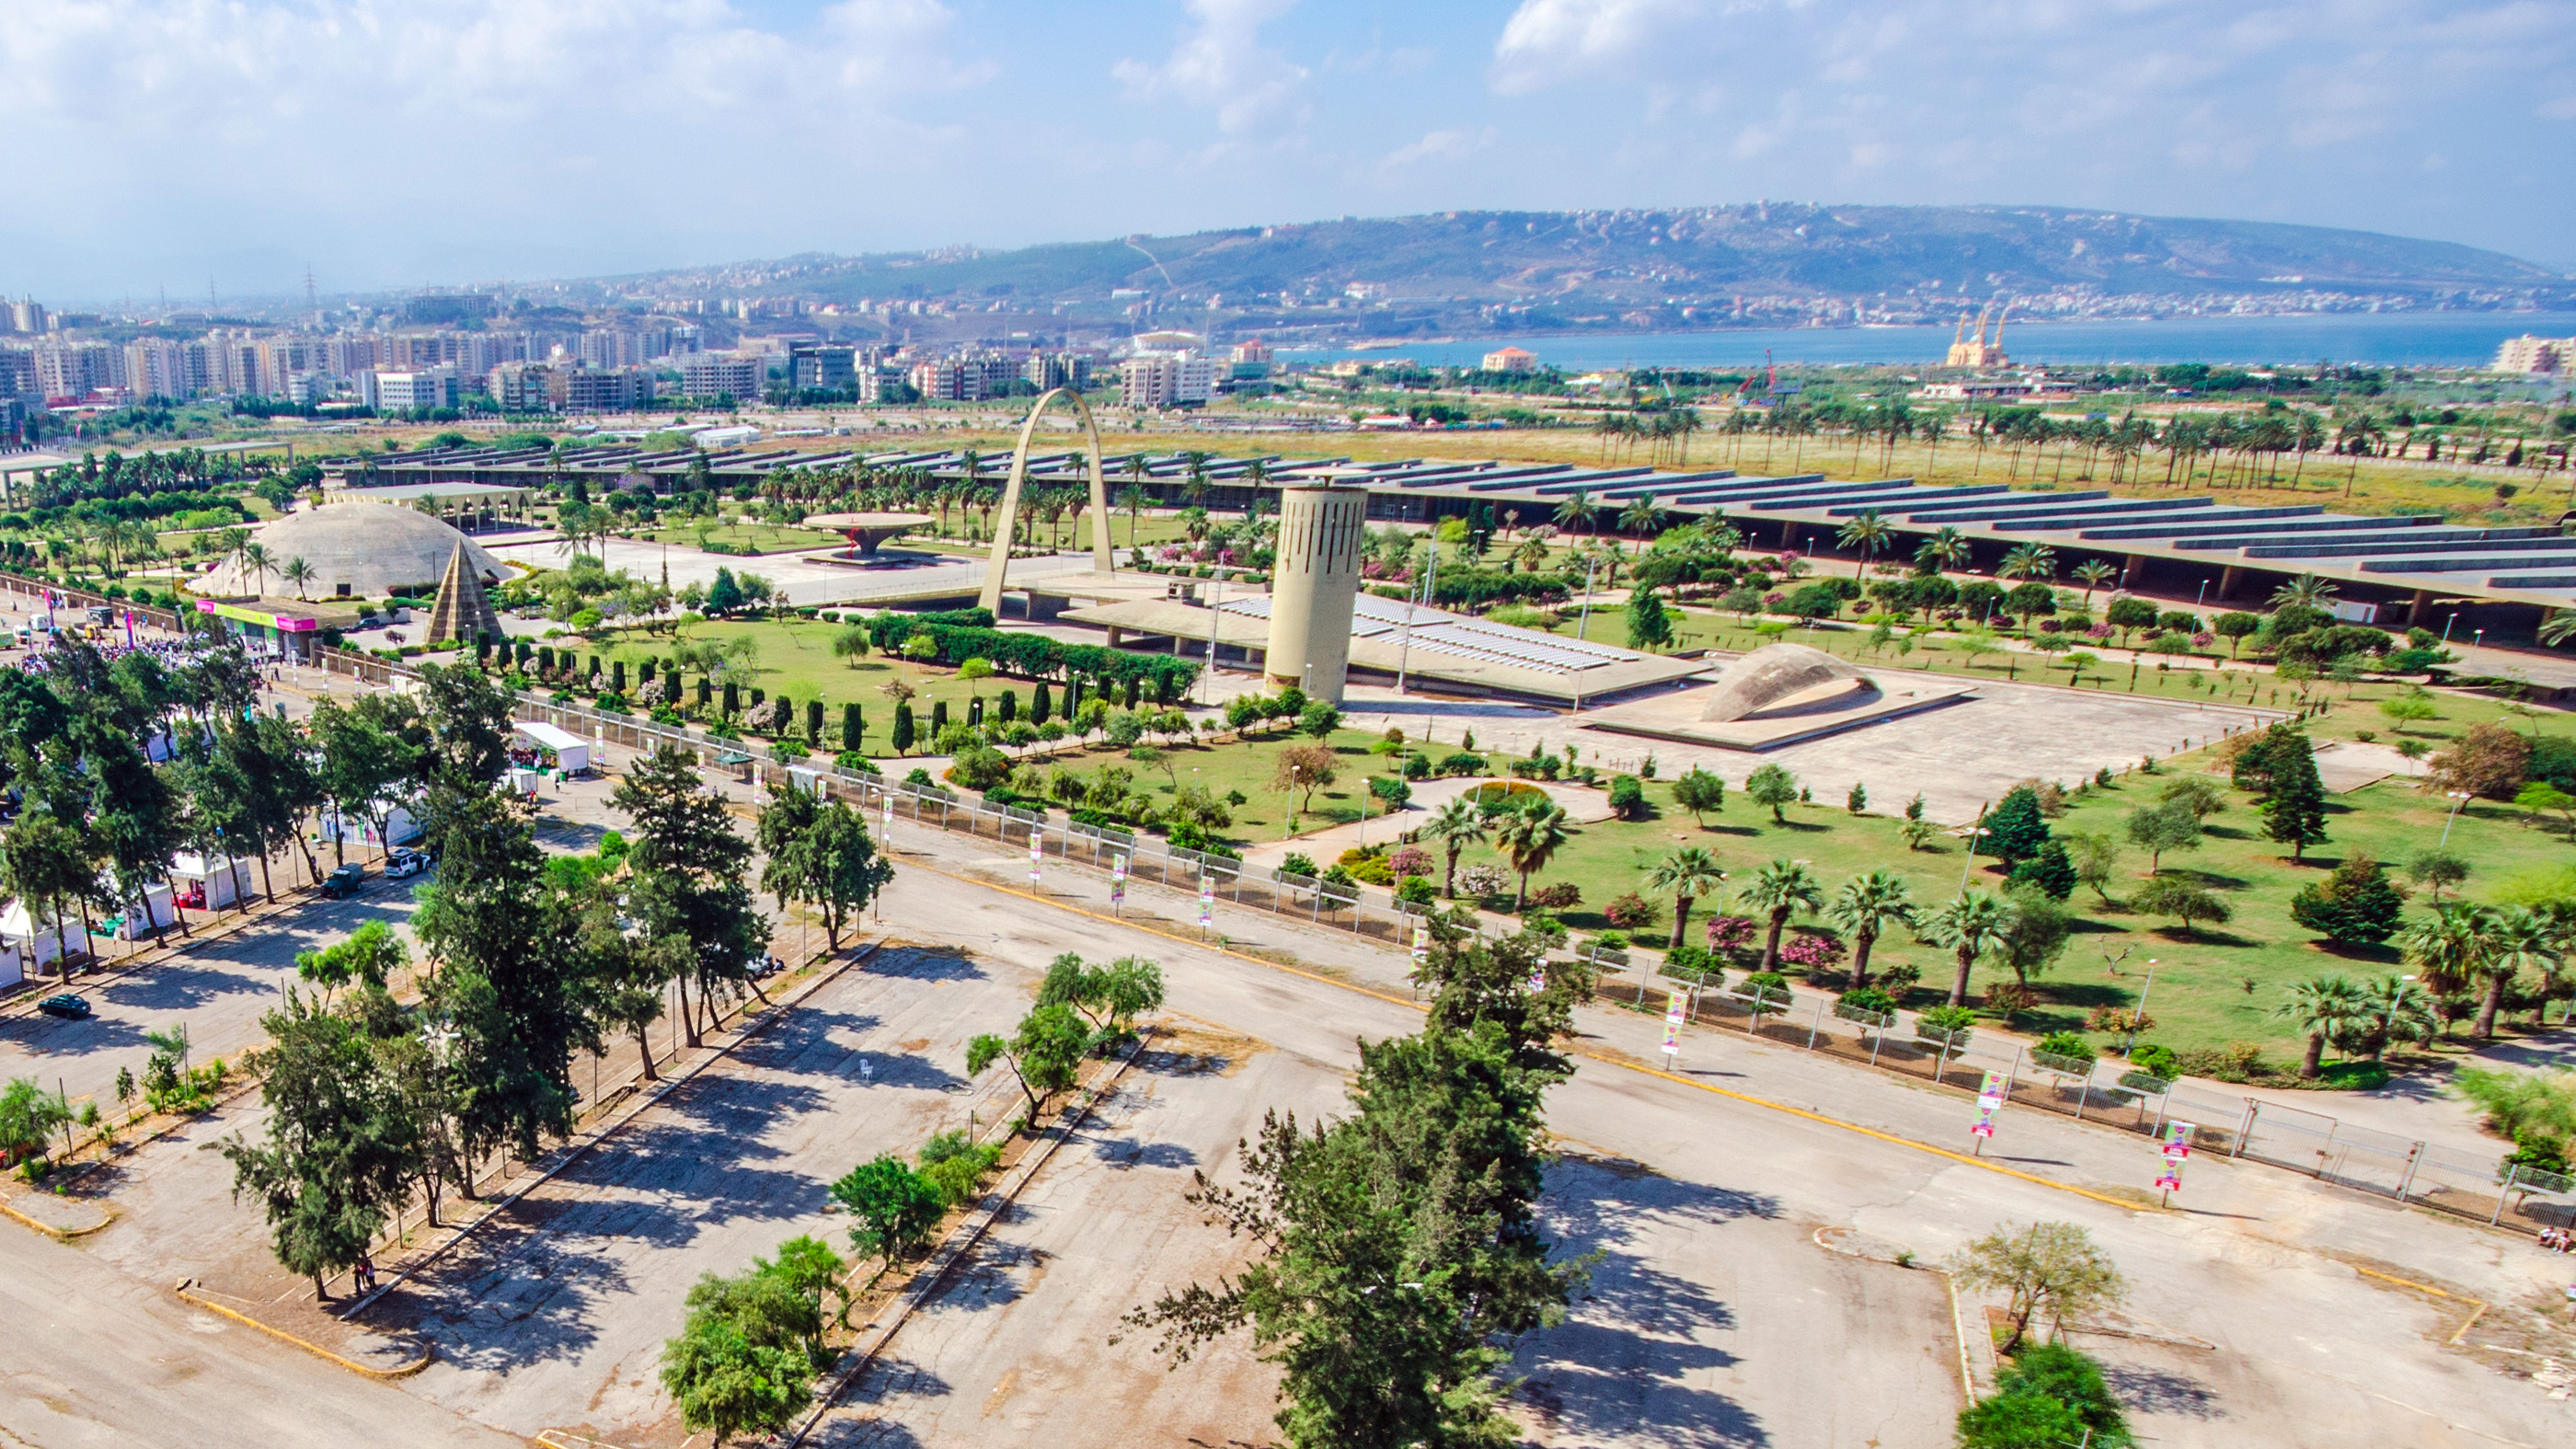 Oscar Niemeyer's Rachid Karami International Fair in Tripoli, Lebanon